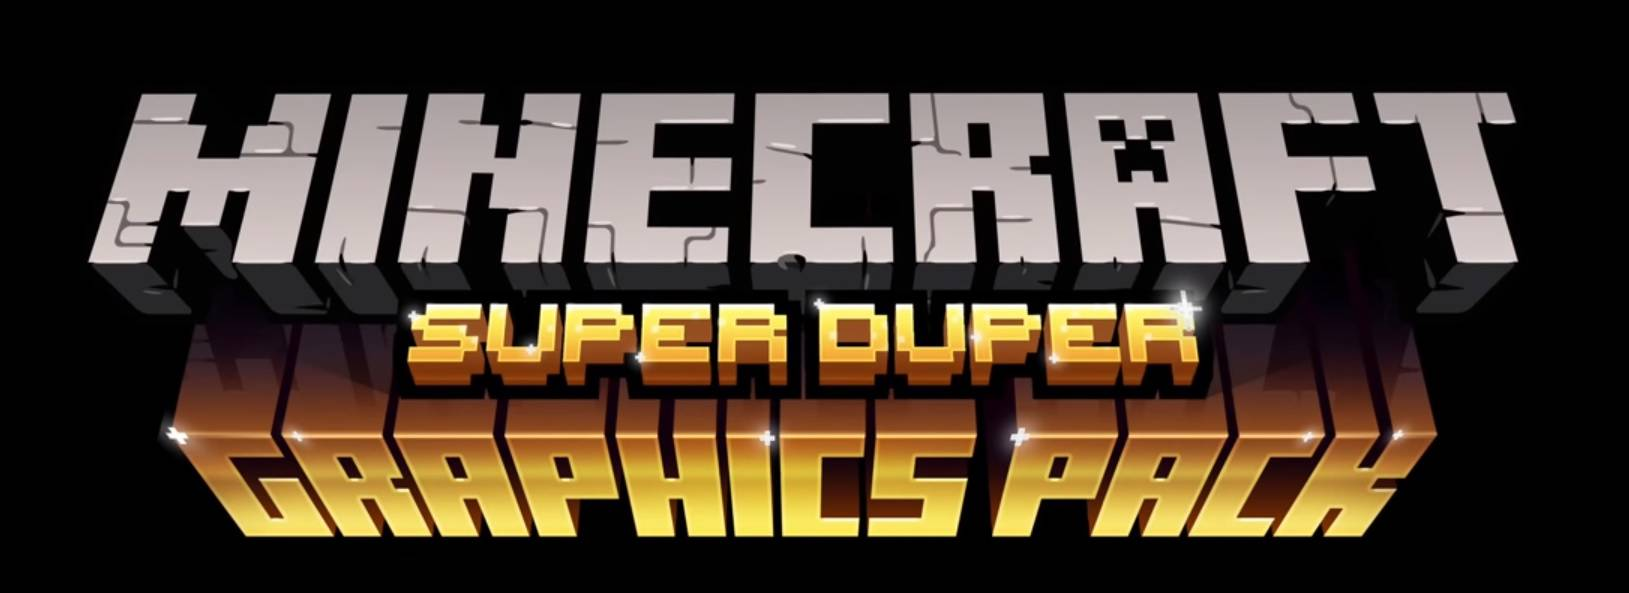 super duper graphics pack logo